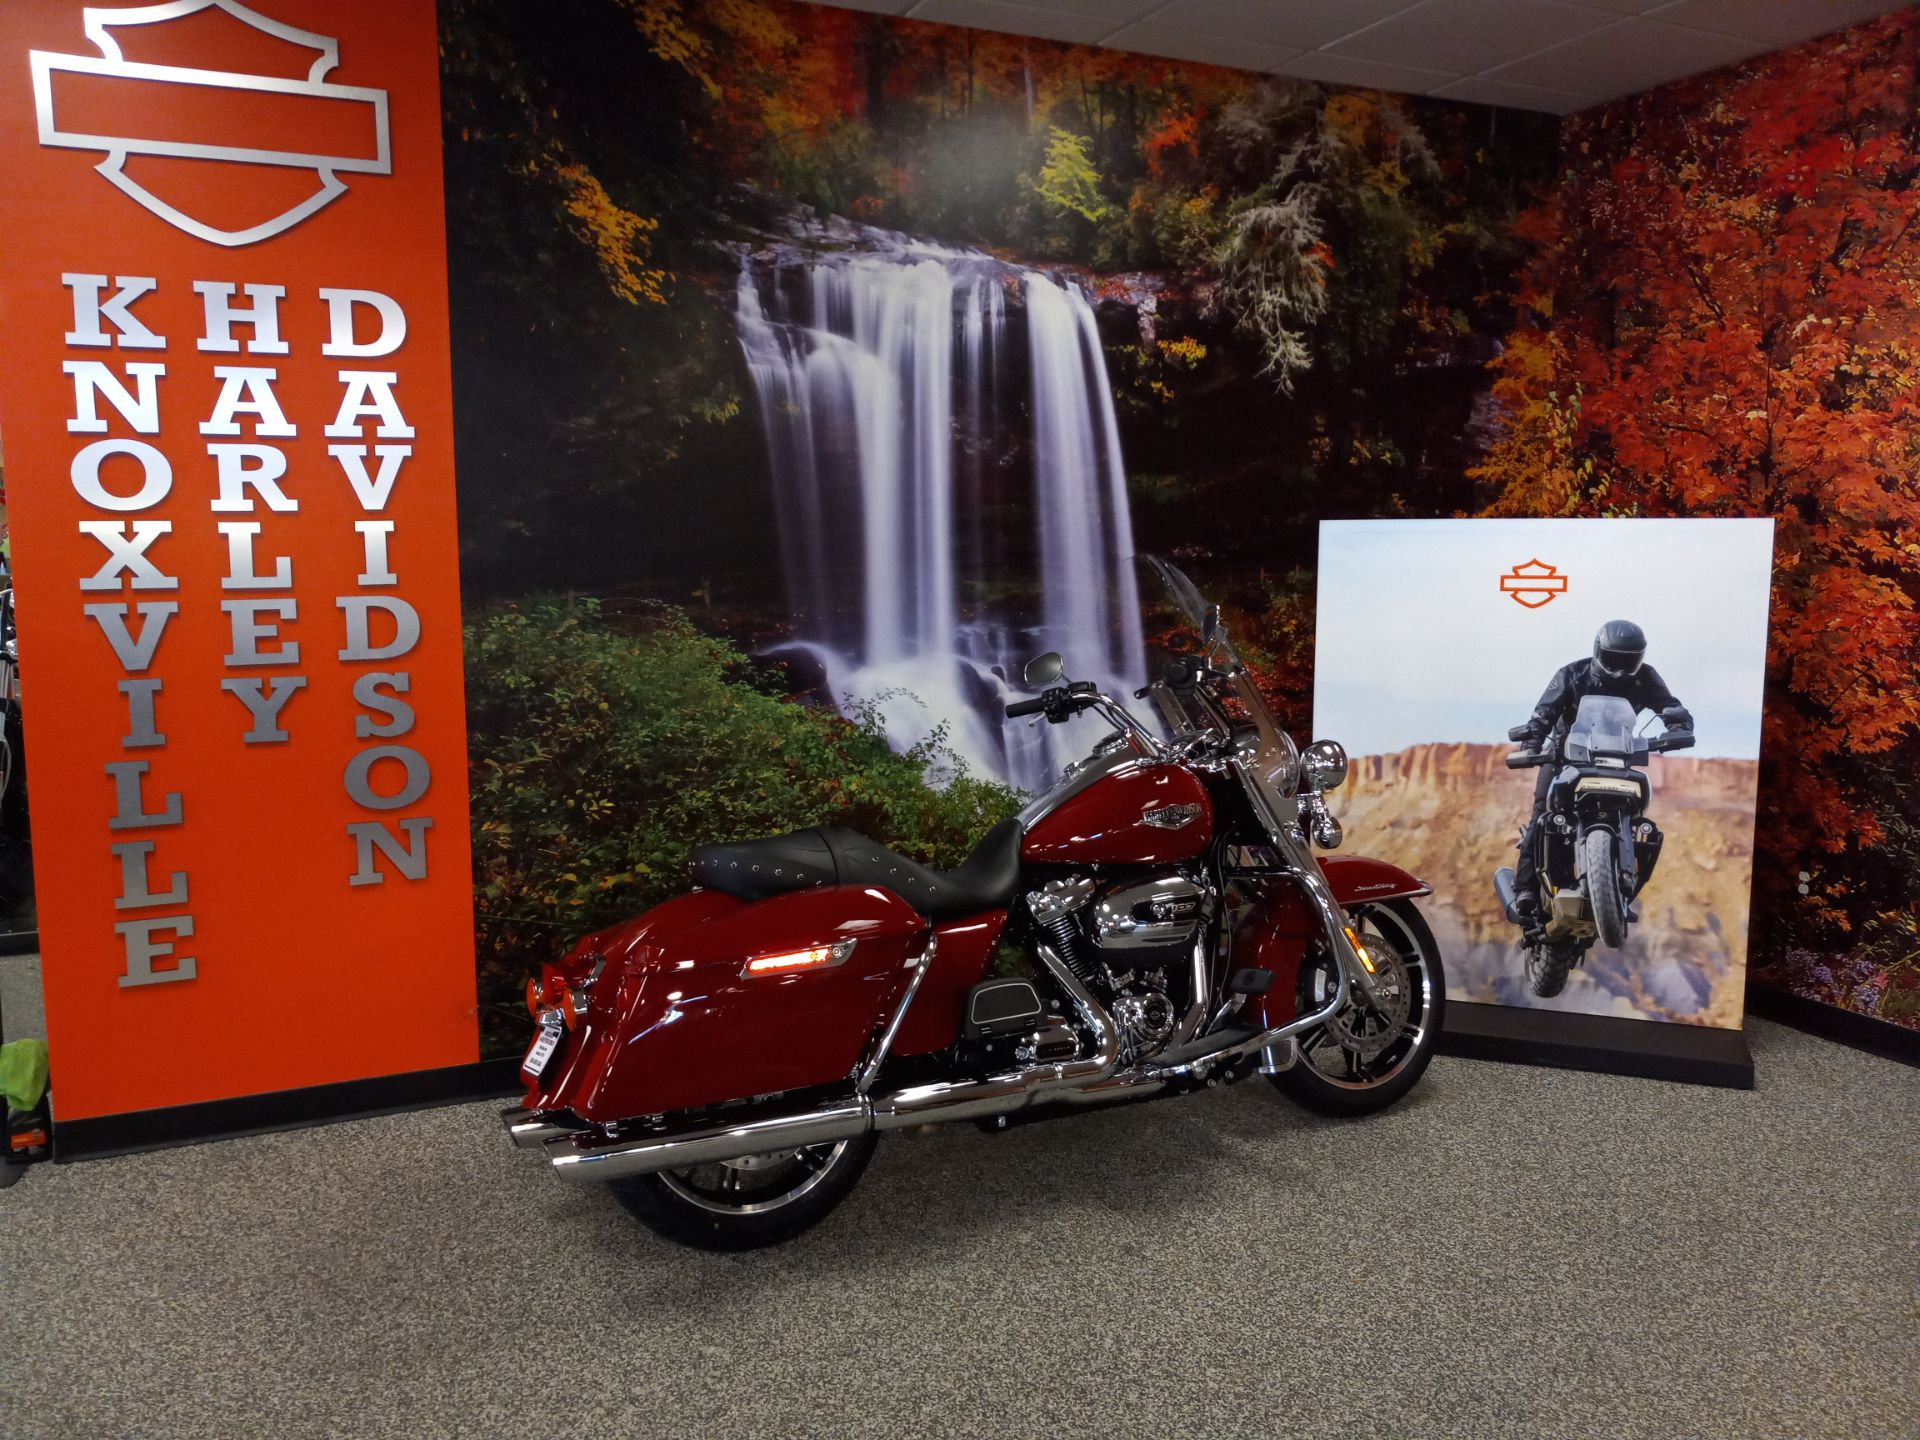 2020 Harley-Davidson Road King in Knoxville, Tennessee - Photo 6